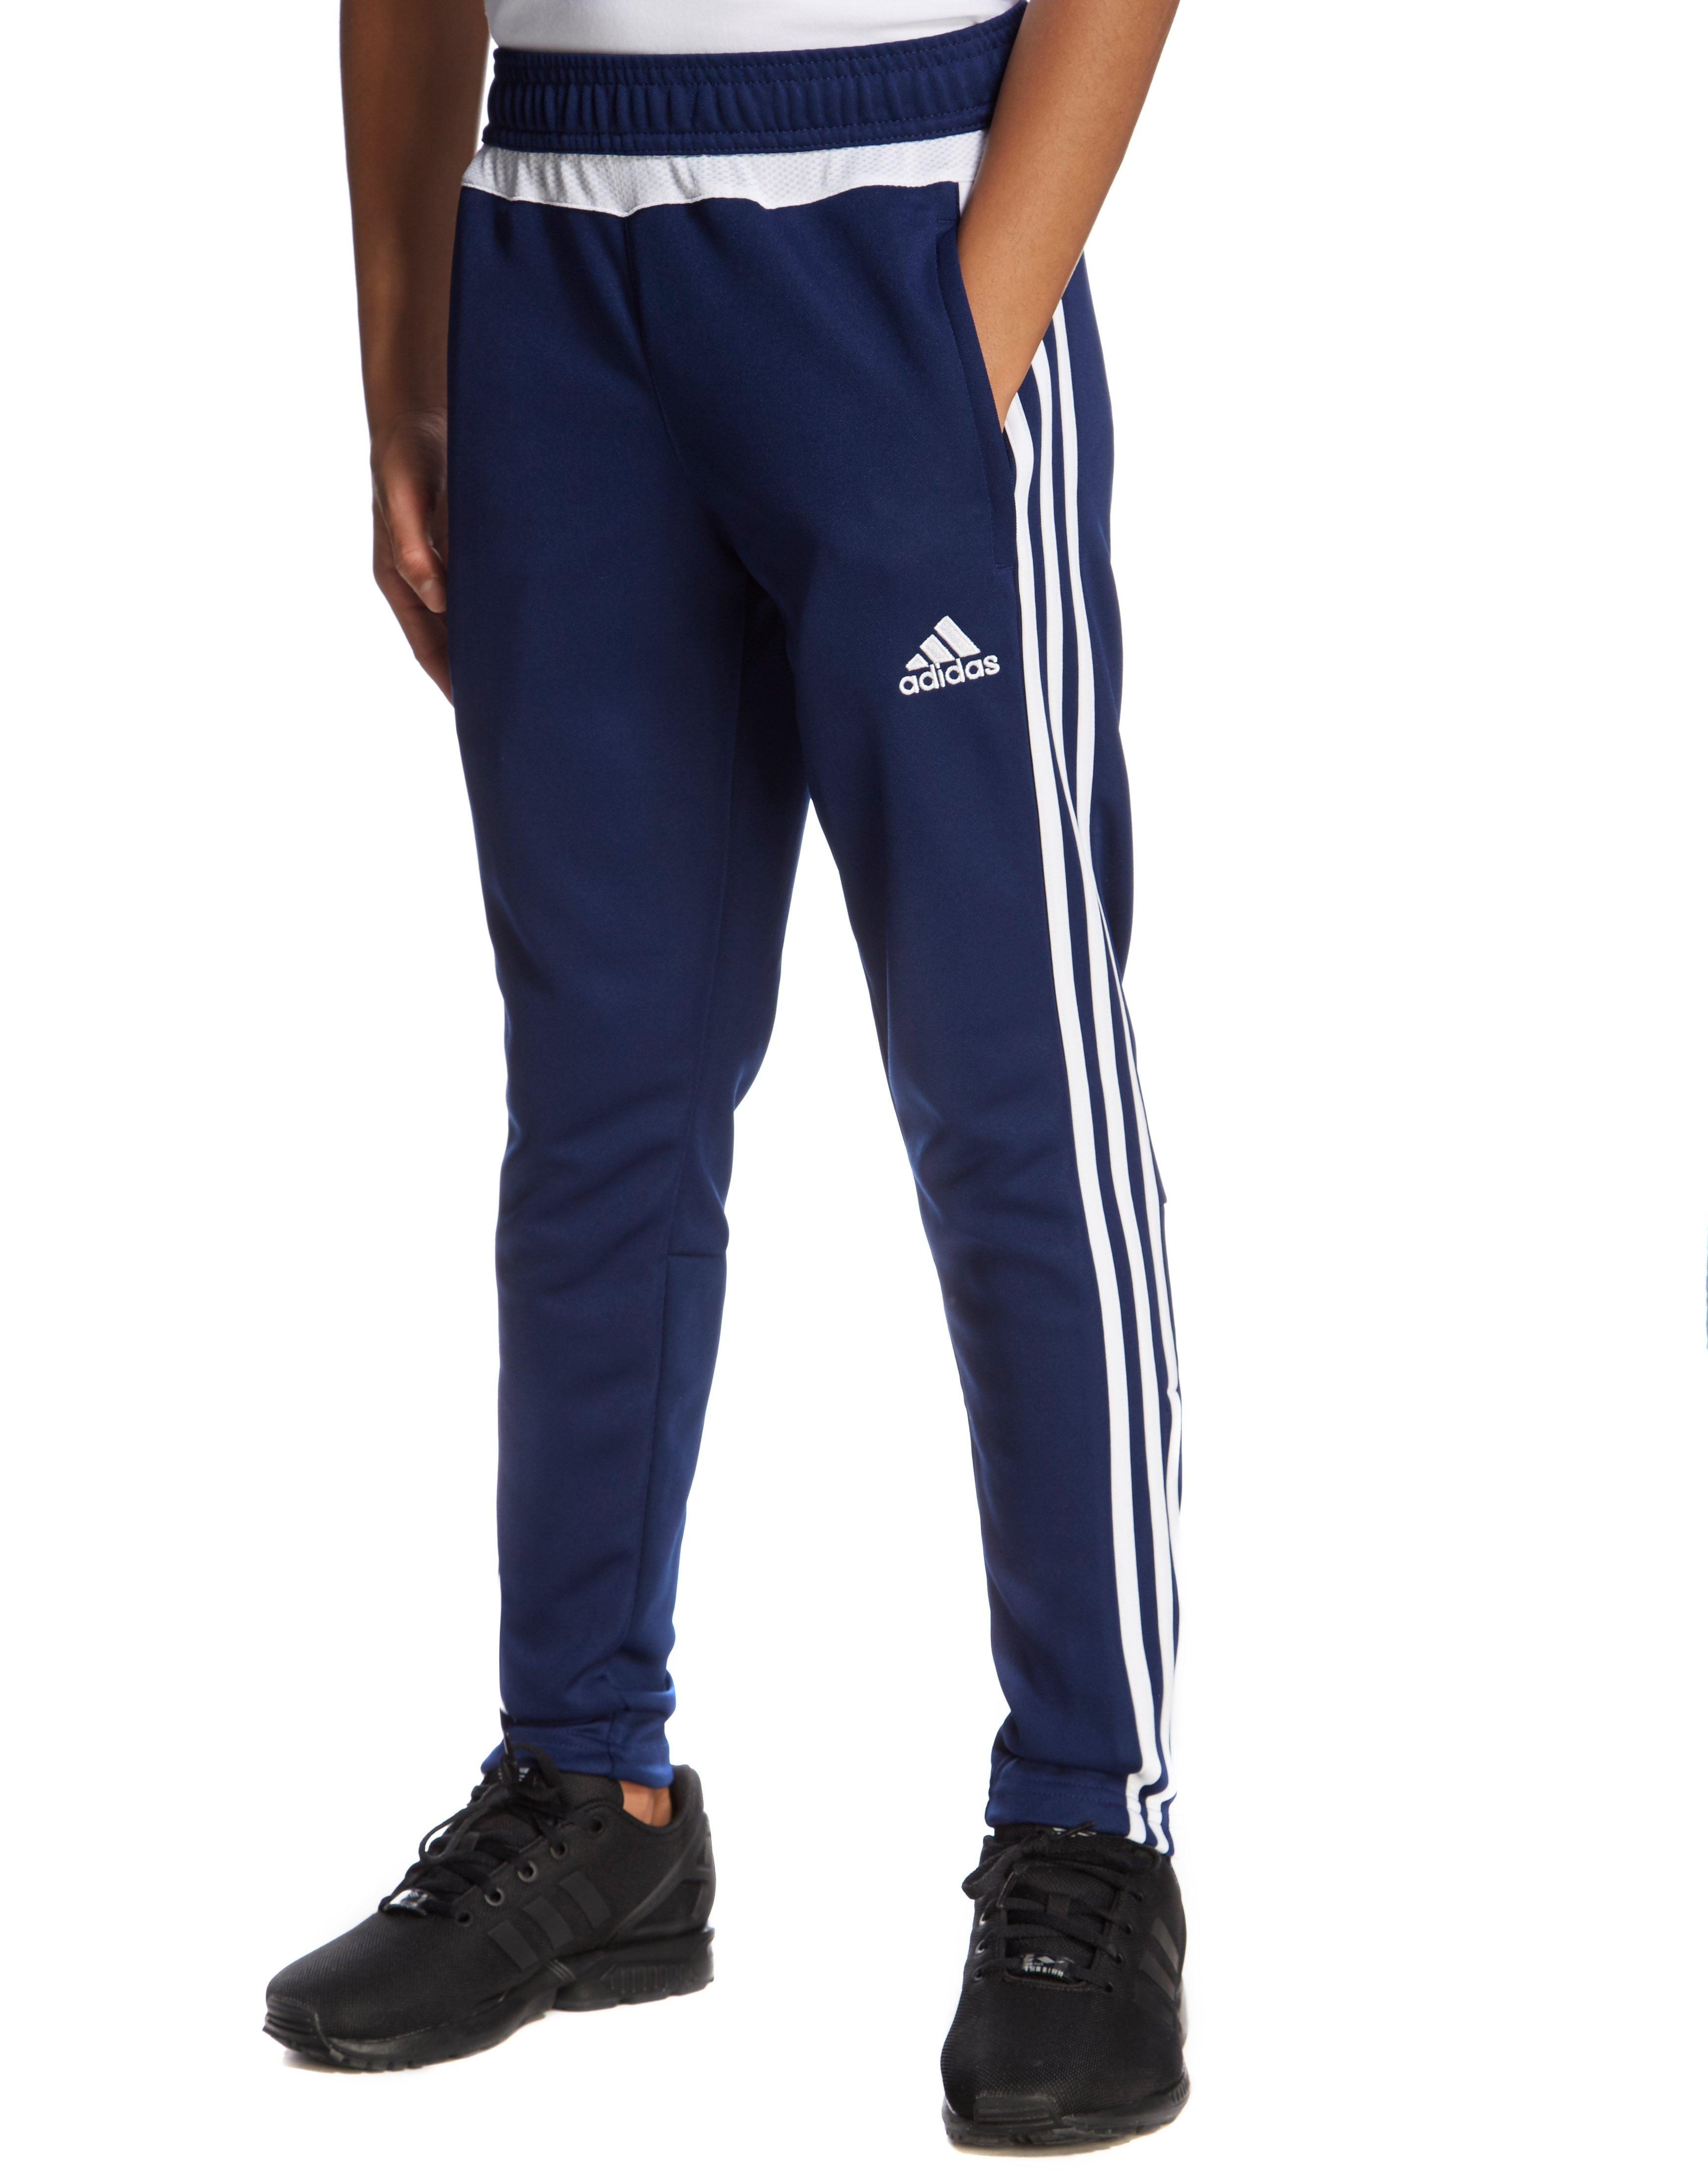 stores that sell adidas clothing